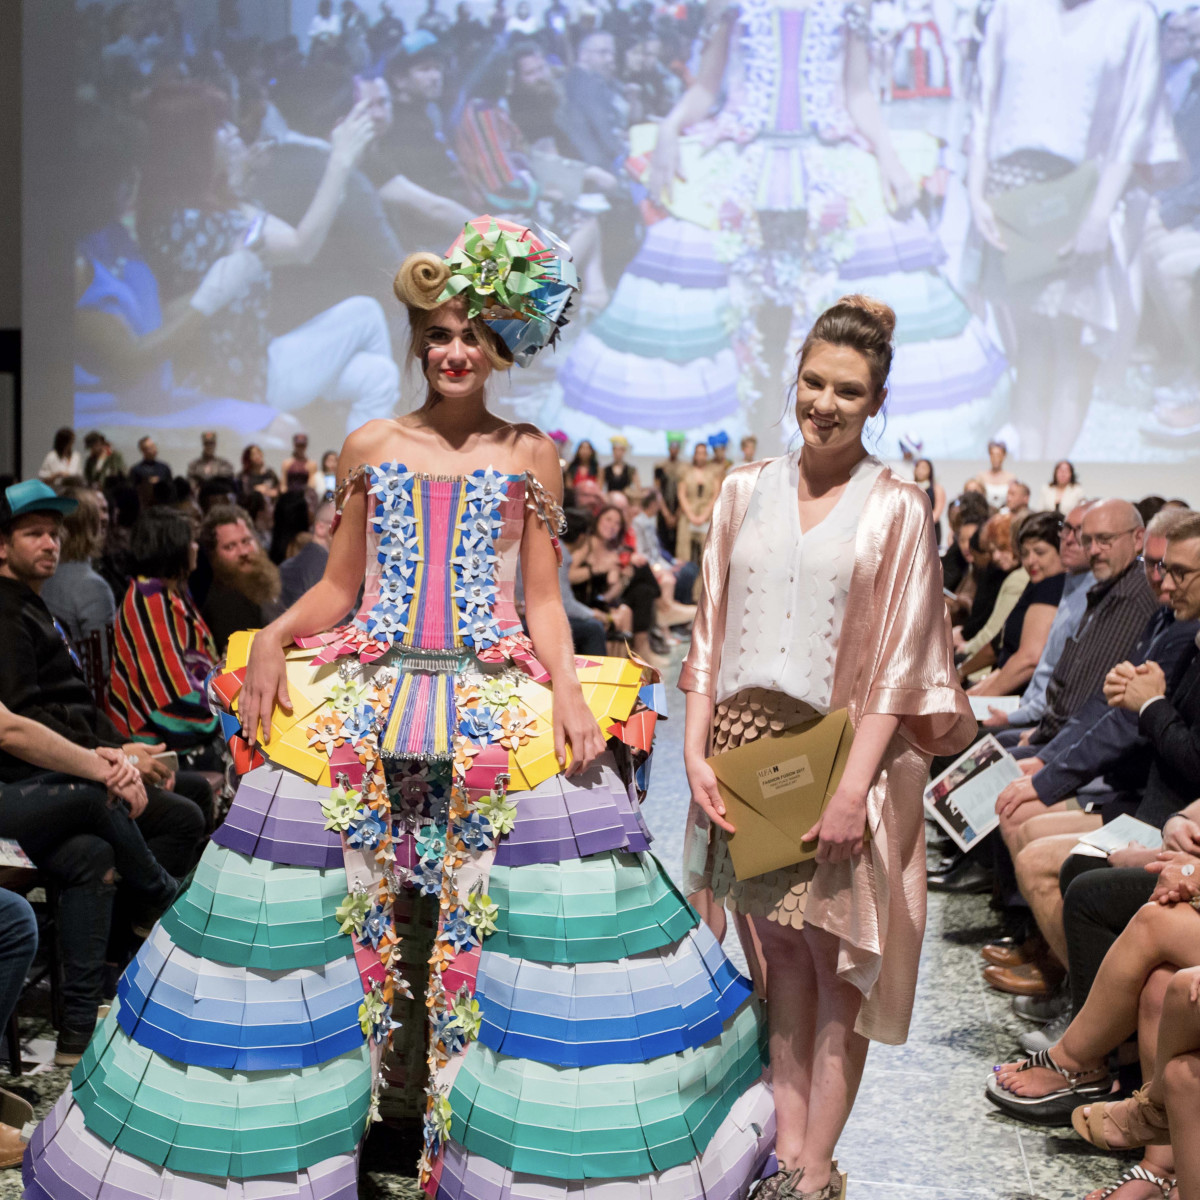 Houston, MFAH Fashion Fusion 2017, May 2017, Kyndall Bollmeyer with model